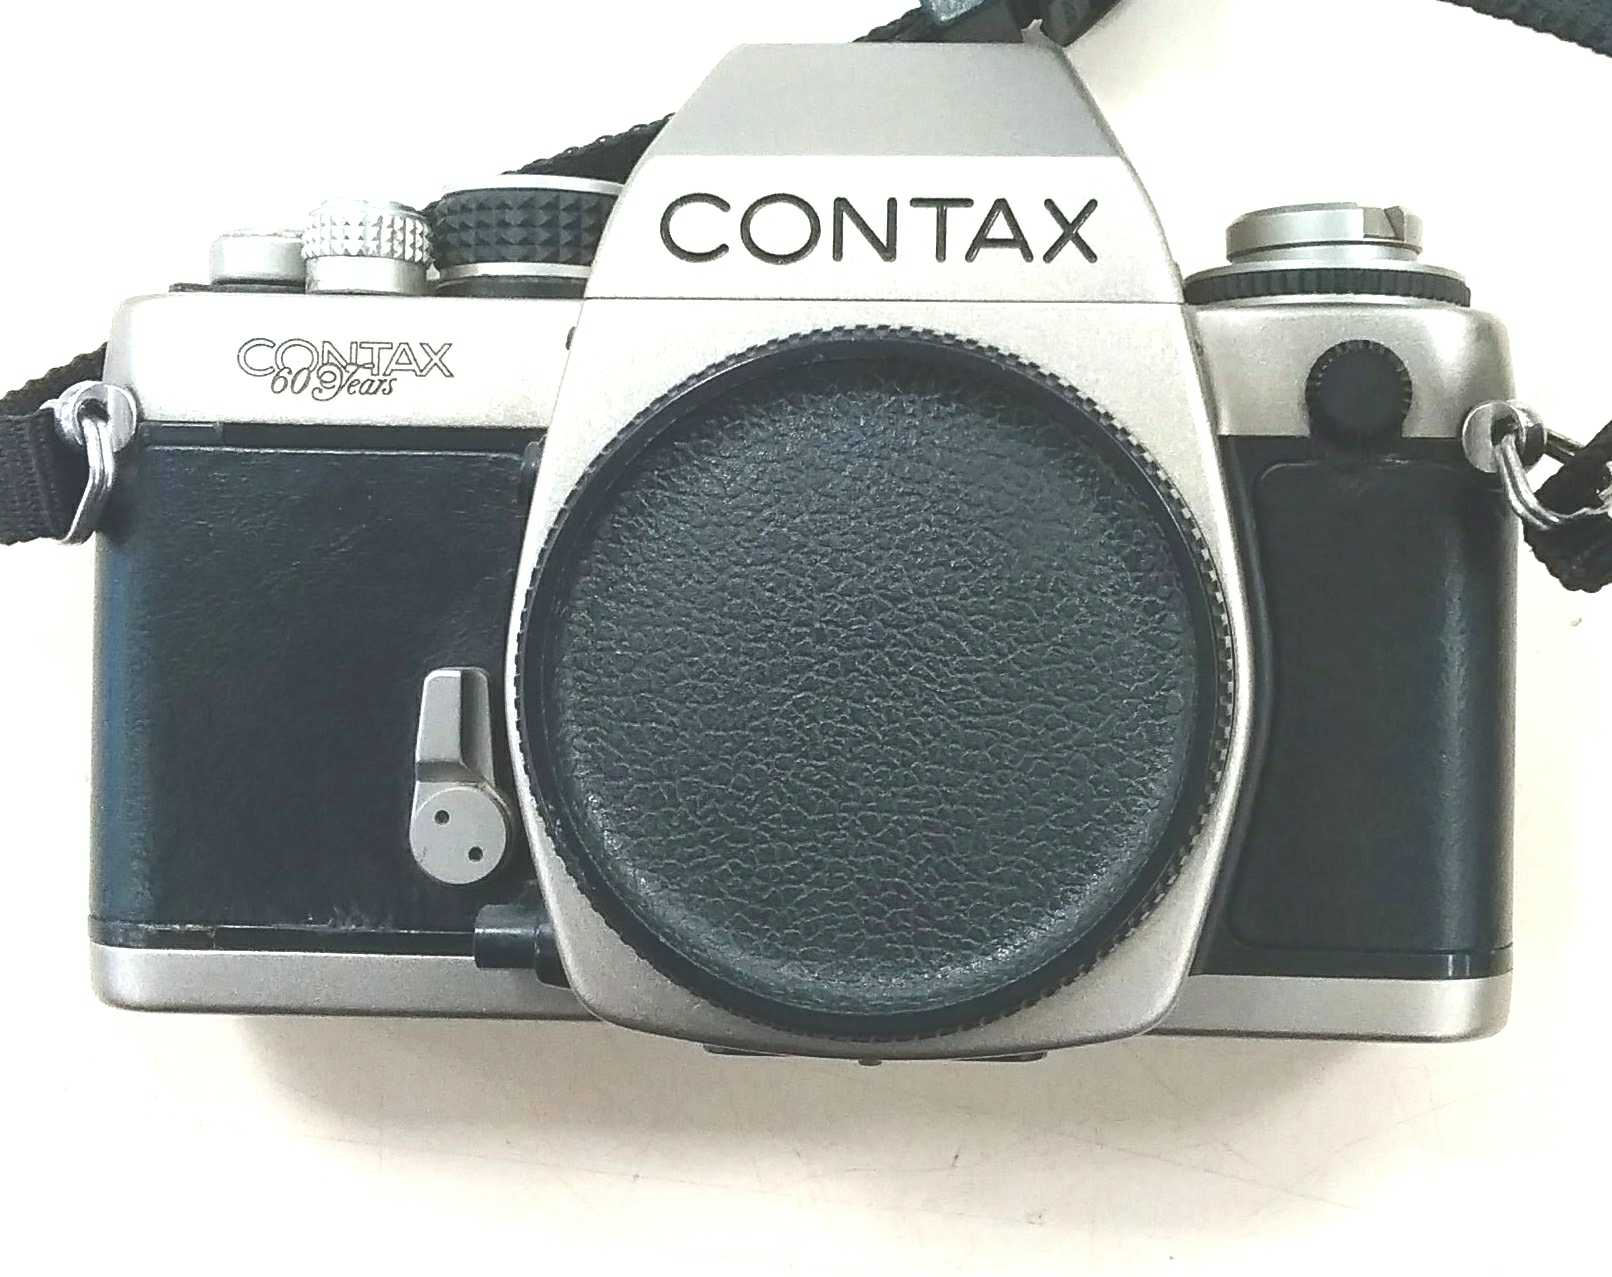 S2 60YEARS|CONTAX